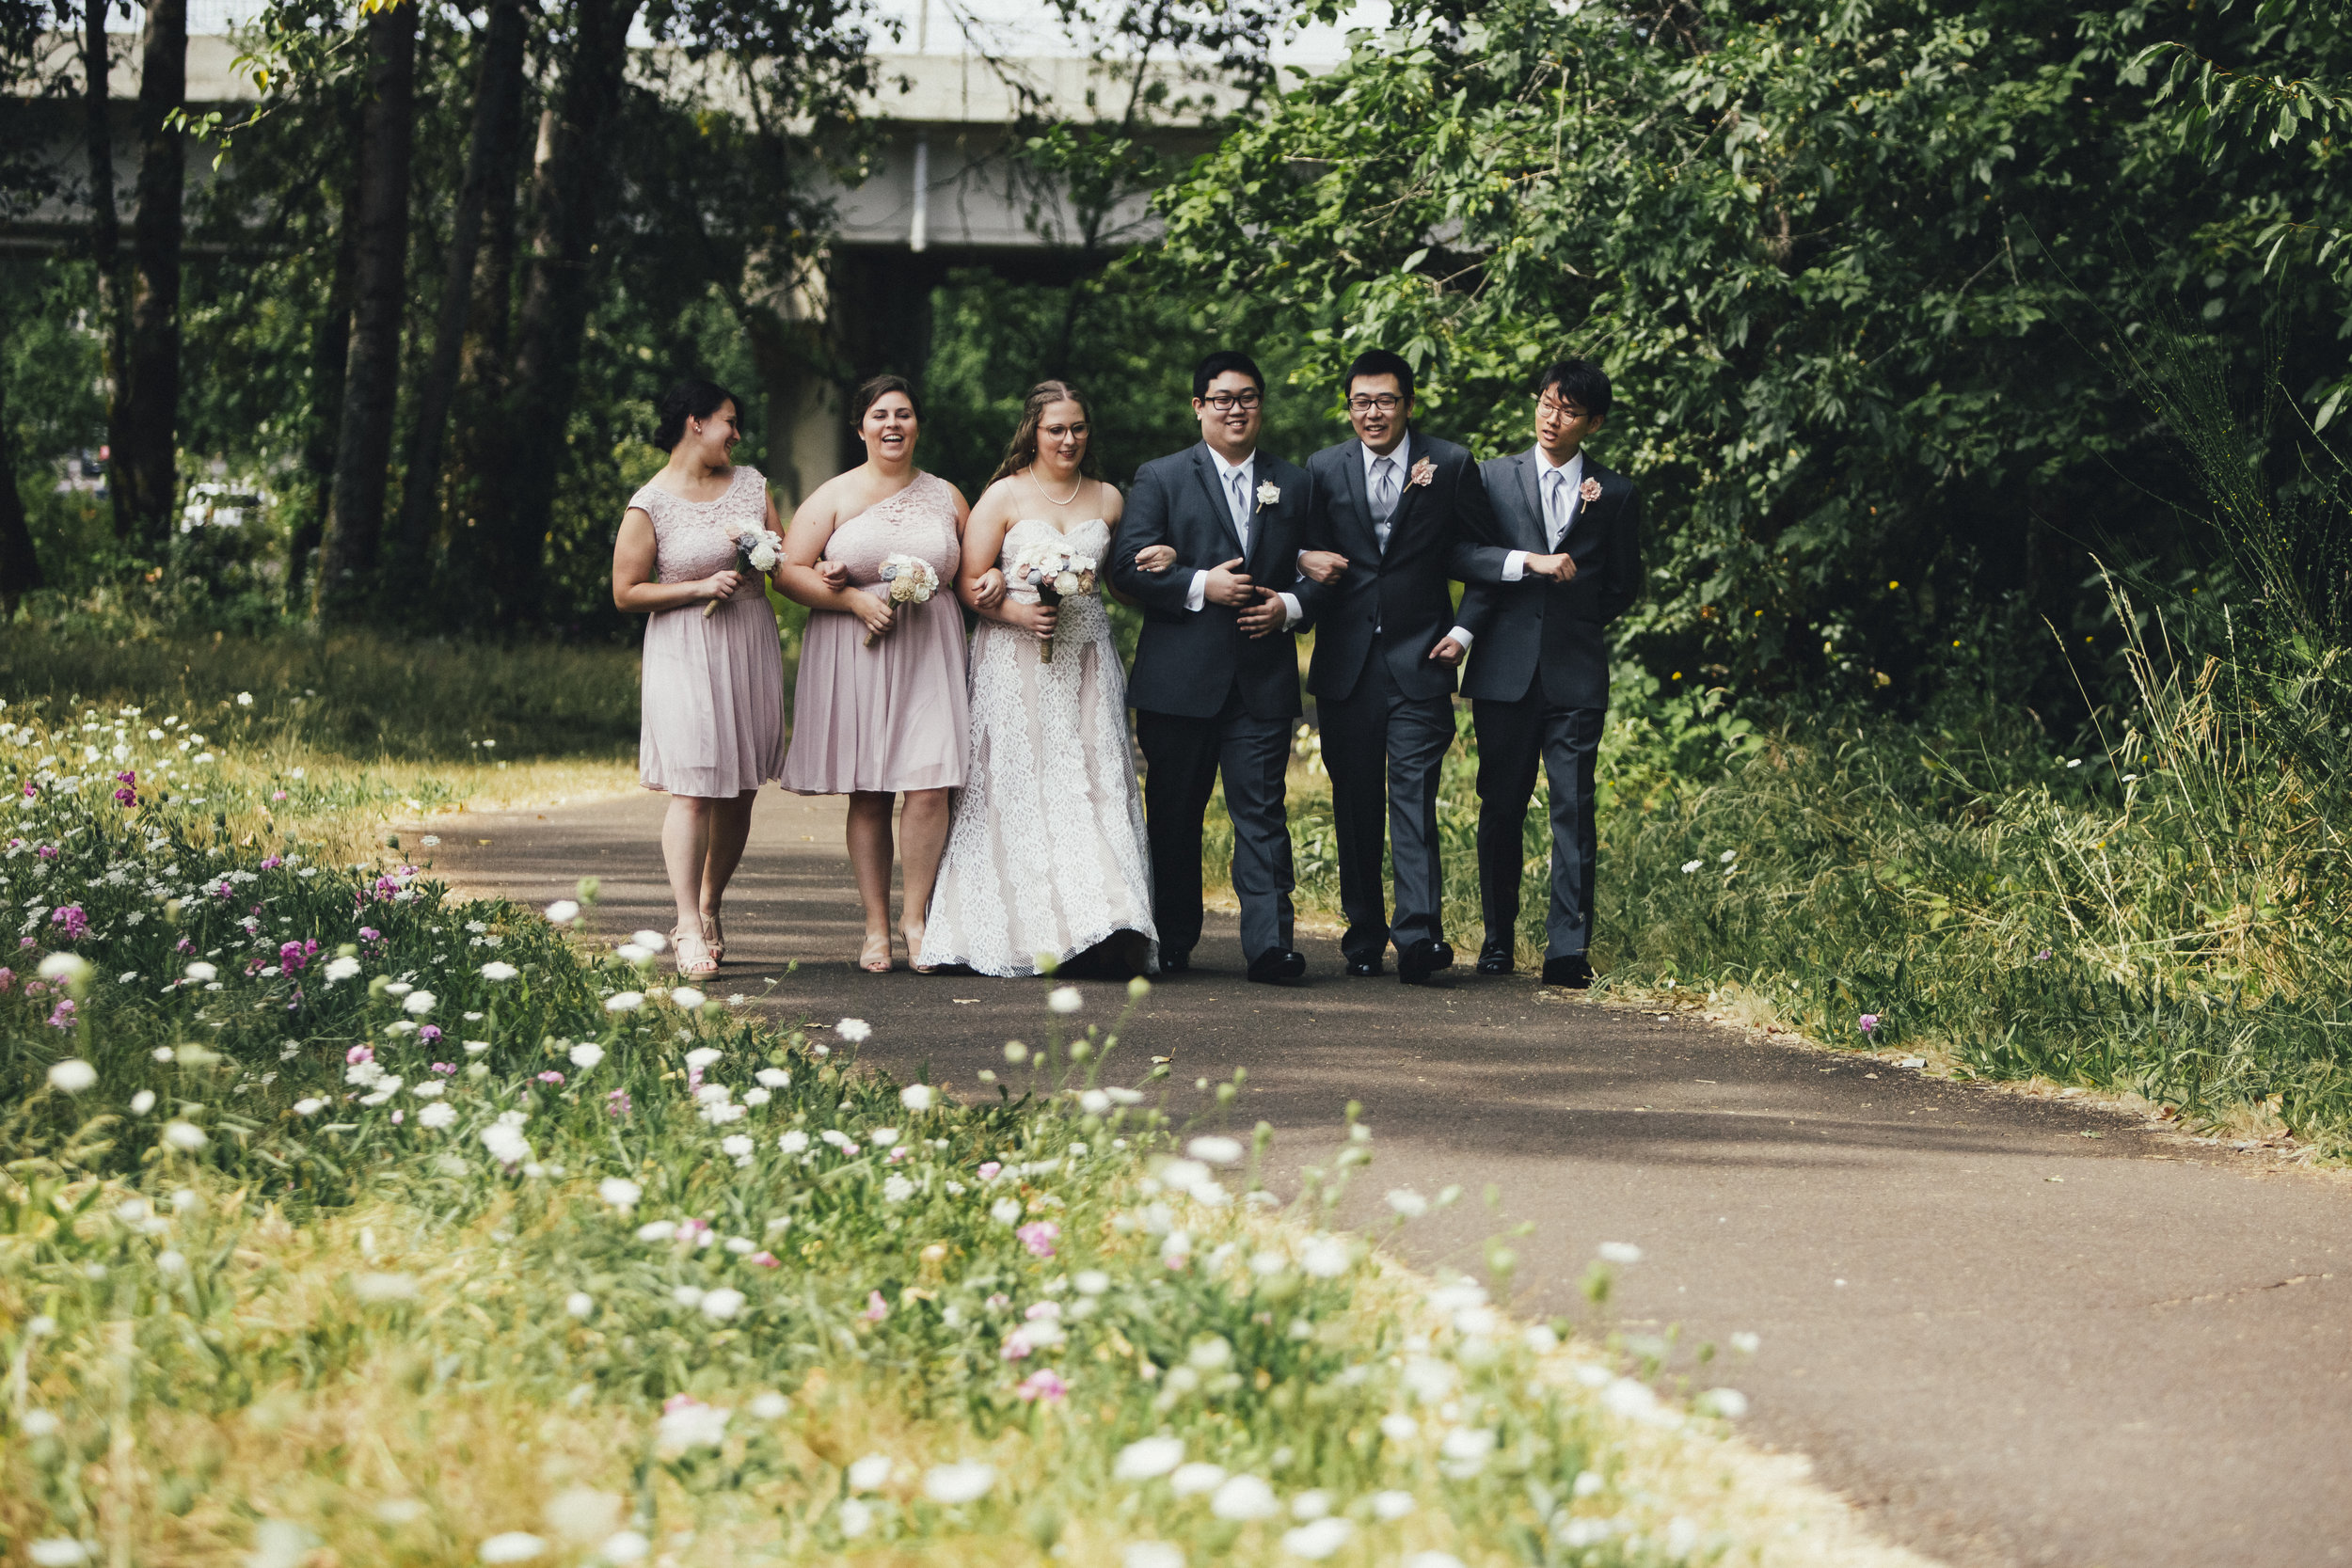 Kenny and Kelana Wedding in Corvallis, Oregon at The Vue